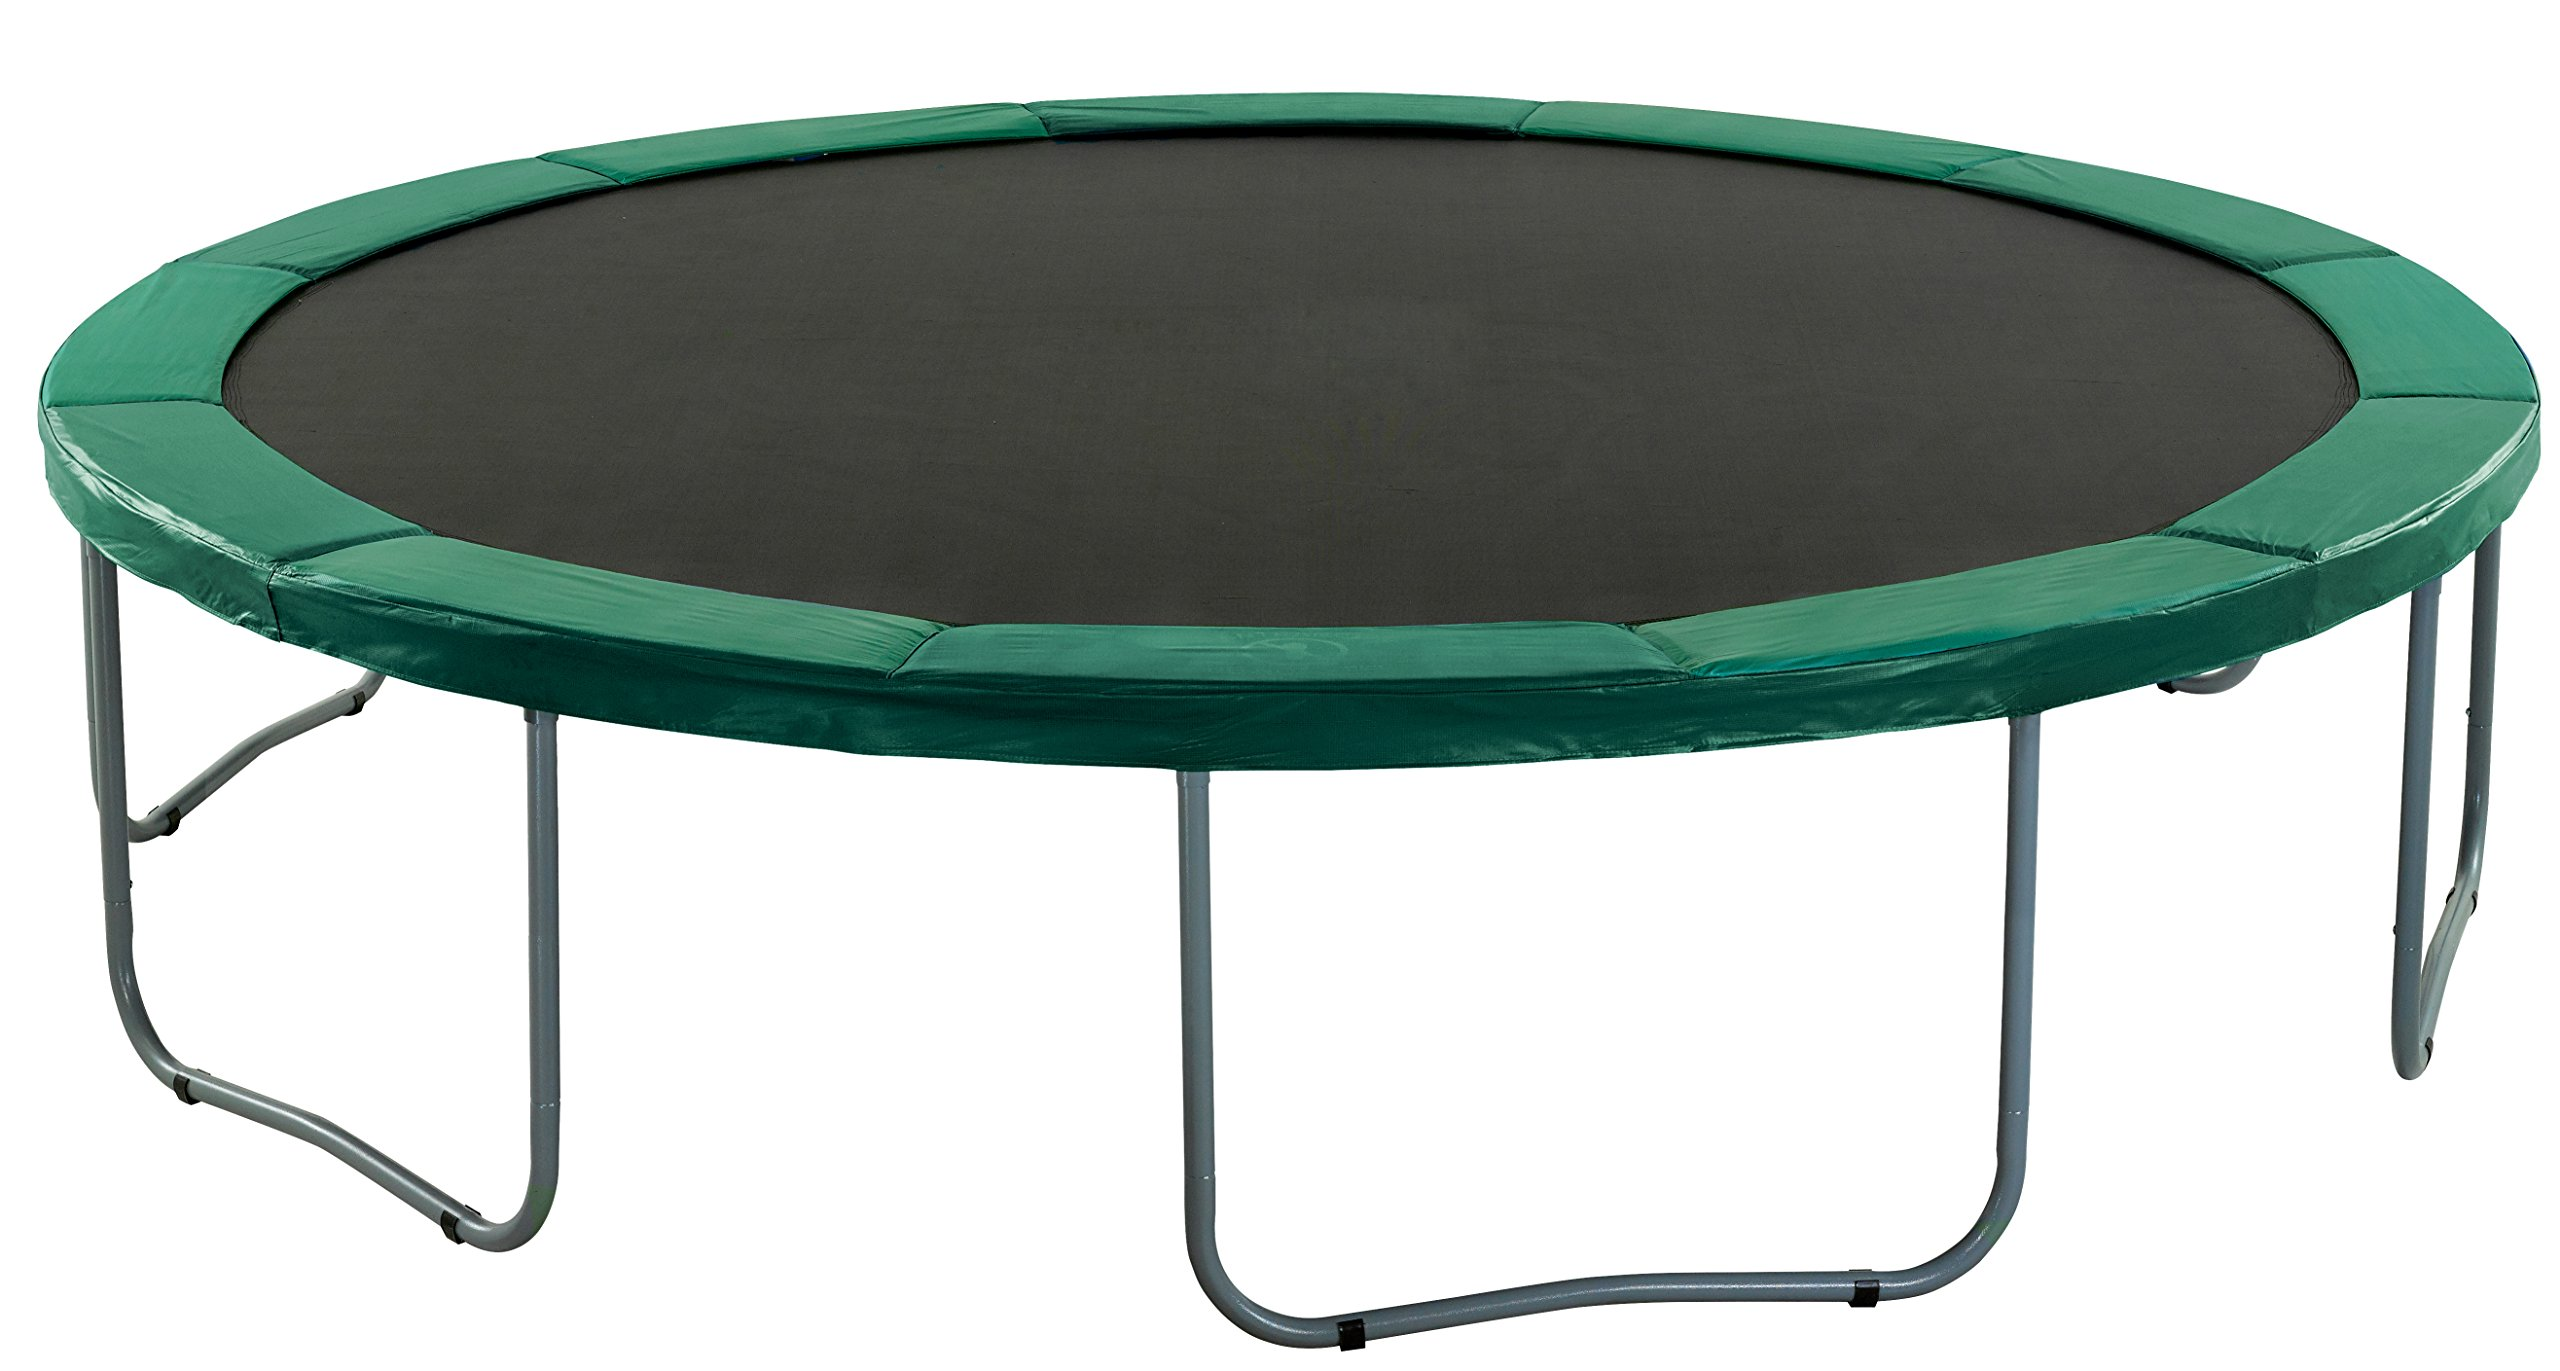 Upper Bounce Super Trampoline Safety Pad (Spring Cover) Fits for 14-Feet Round 10-Inch Wide Trampoline Frames, Green by Upper Bounce (Image #7)